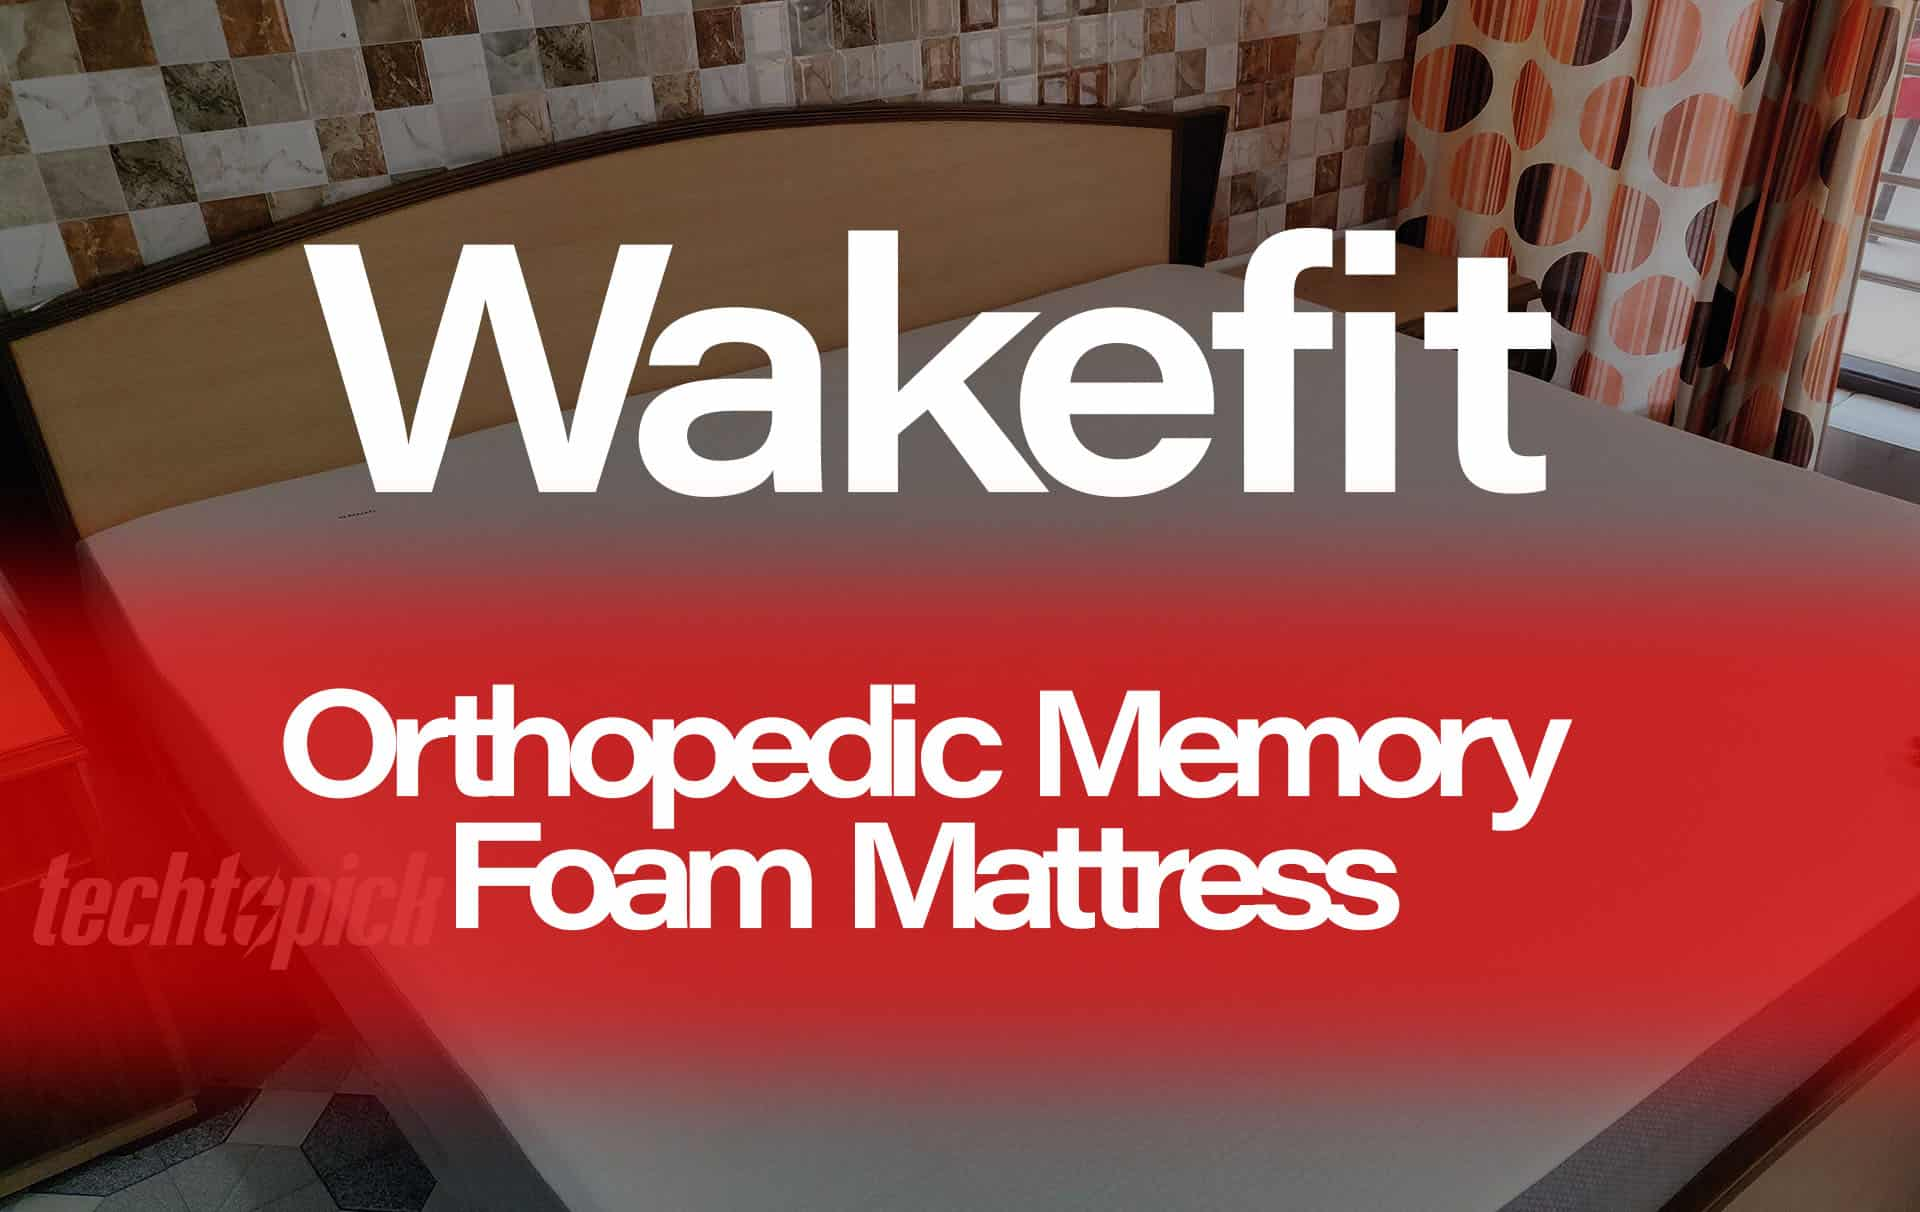 Wakefit Orthopedic Memory Foam (8-inch) Mattress Review | March 2019